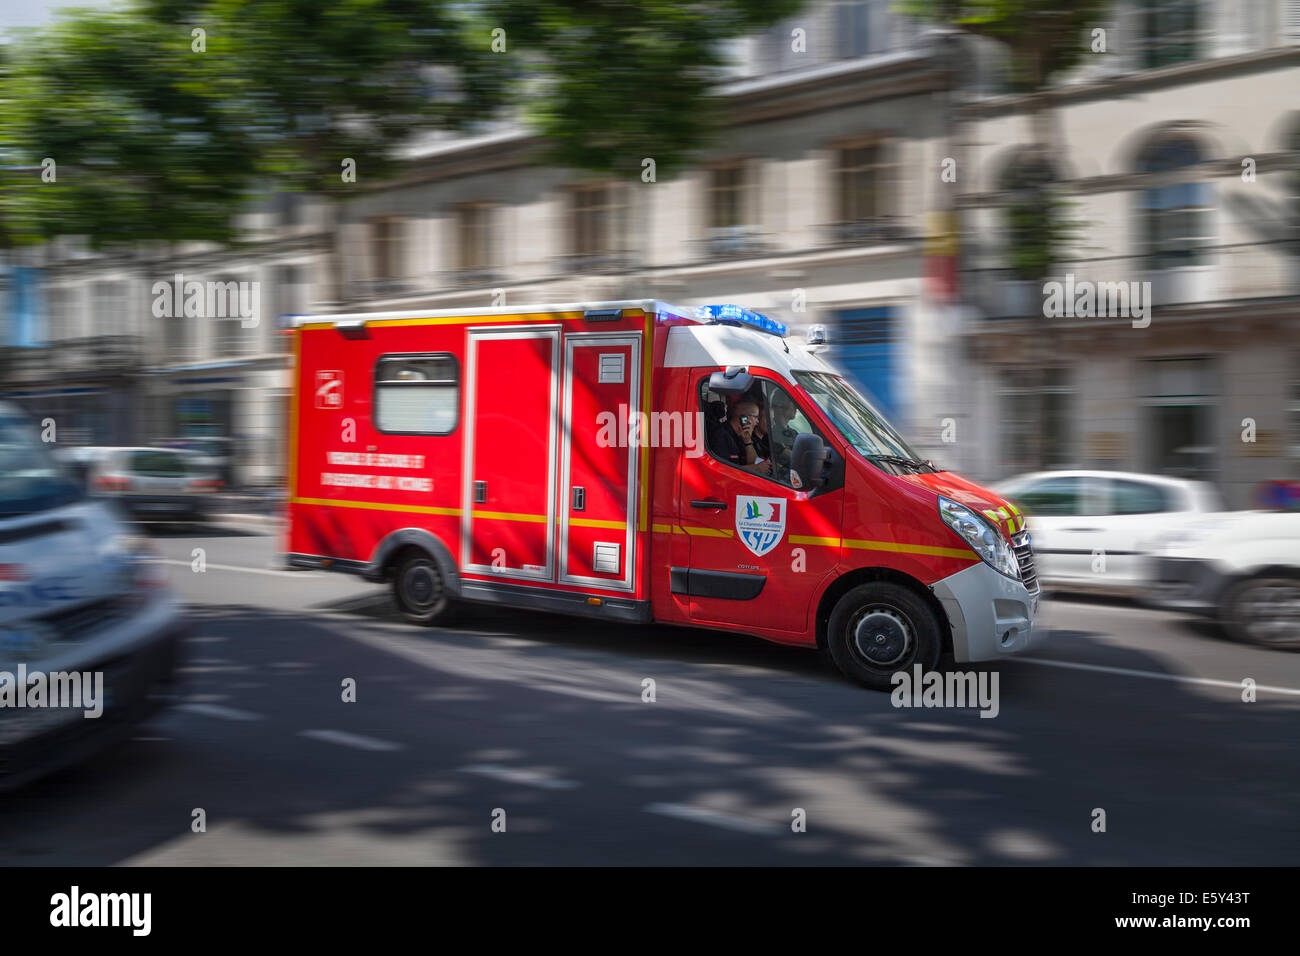 Blurred French emergency vehicle rushing through city street with blue lights flashing. - Stock Image